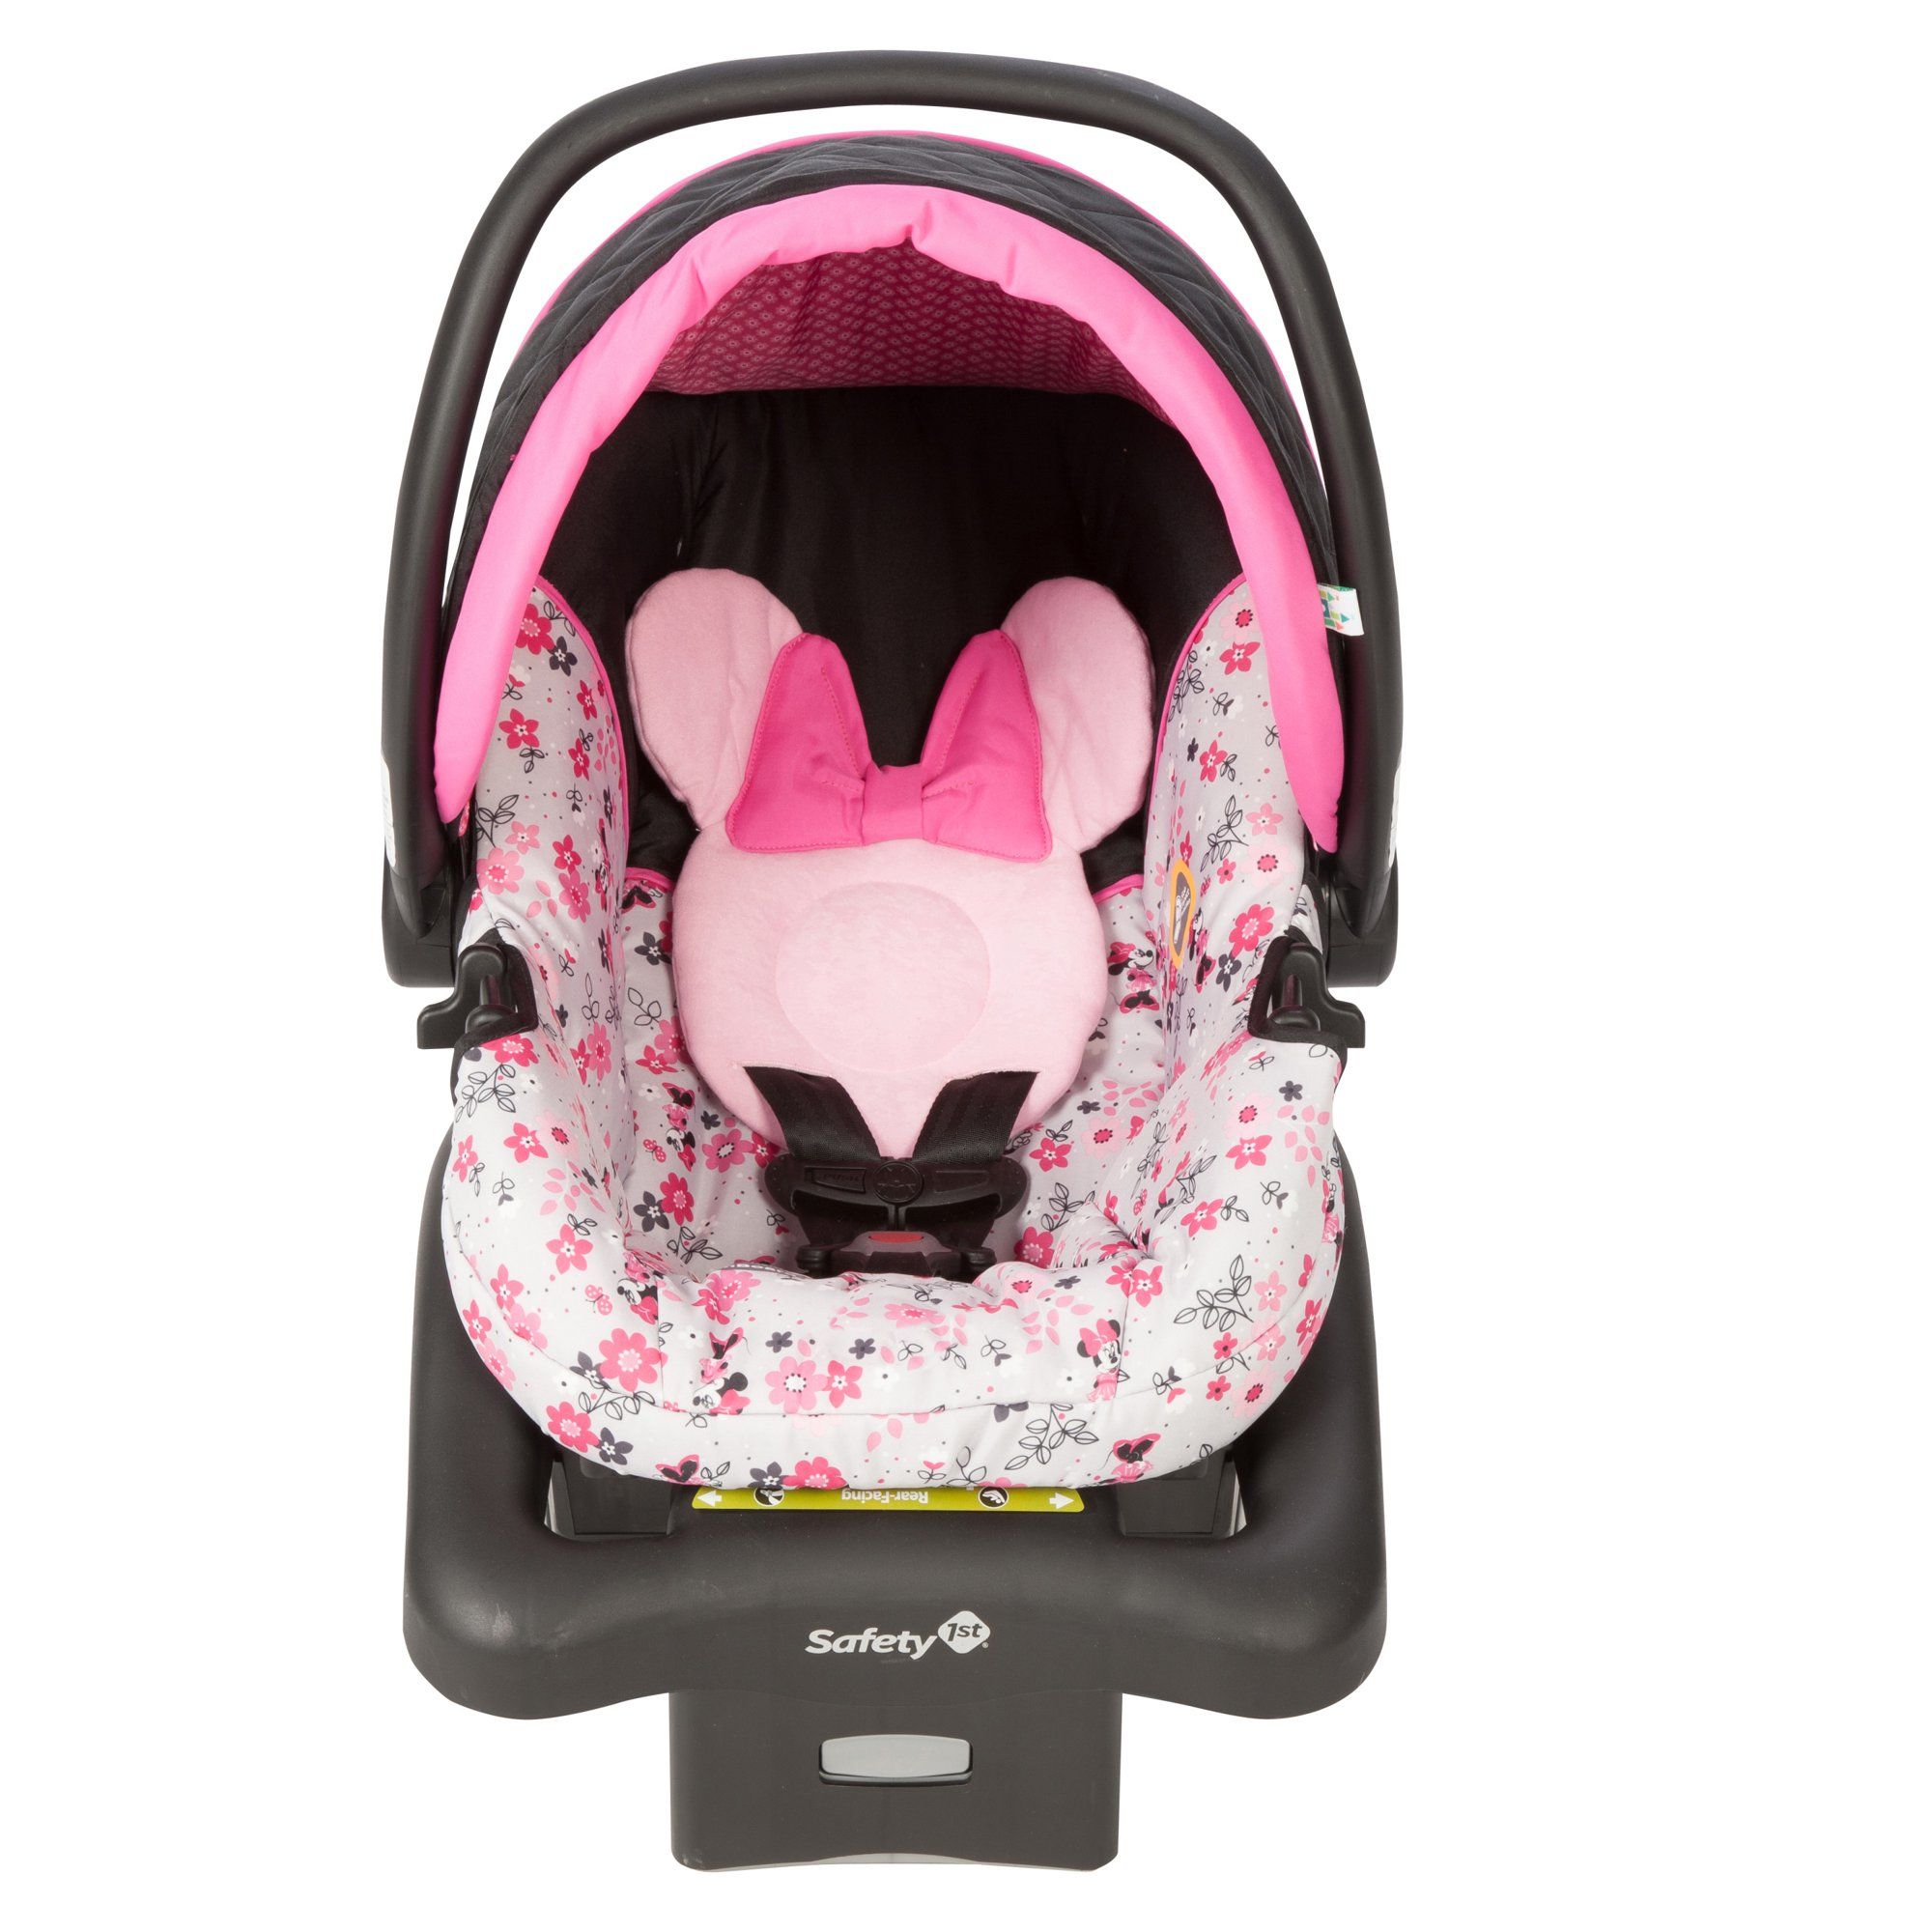 24+ Walmart minnie mouse stroller and carseat ideas in 2021